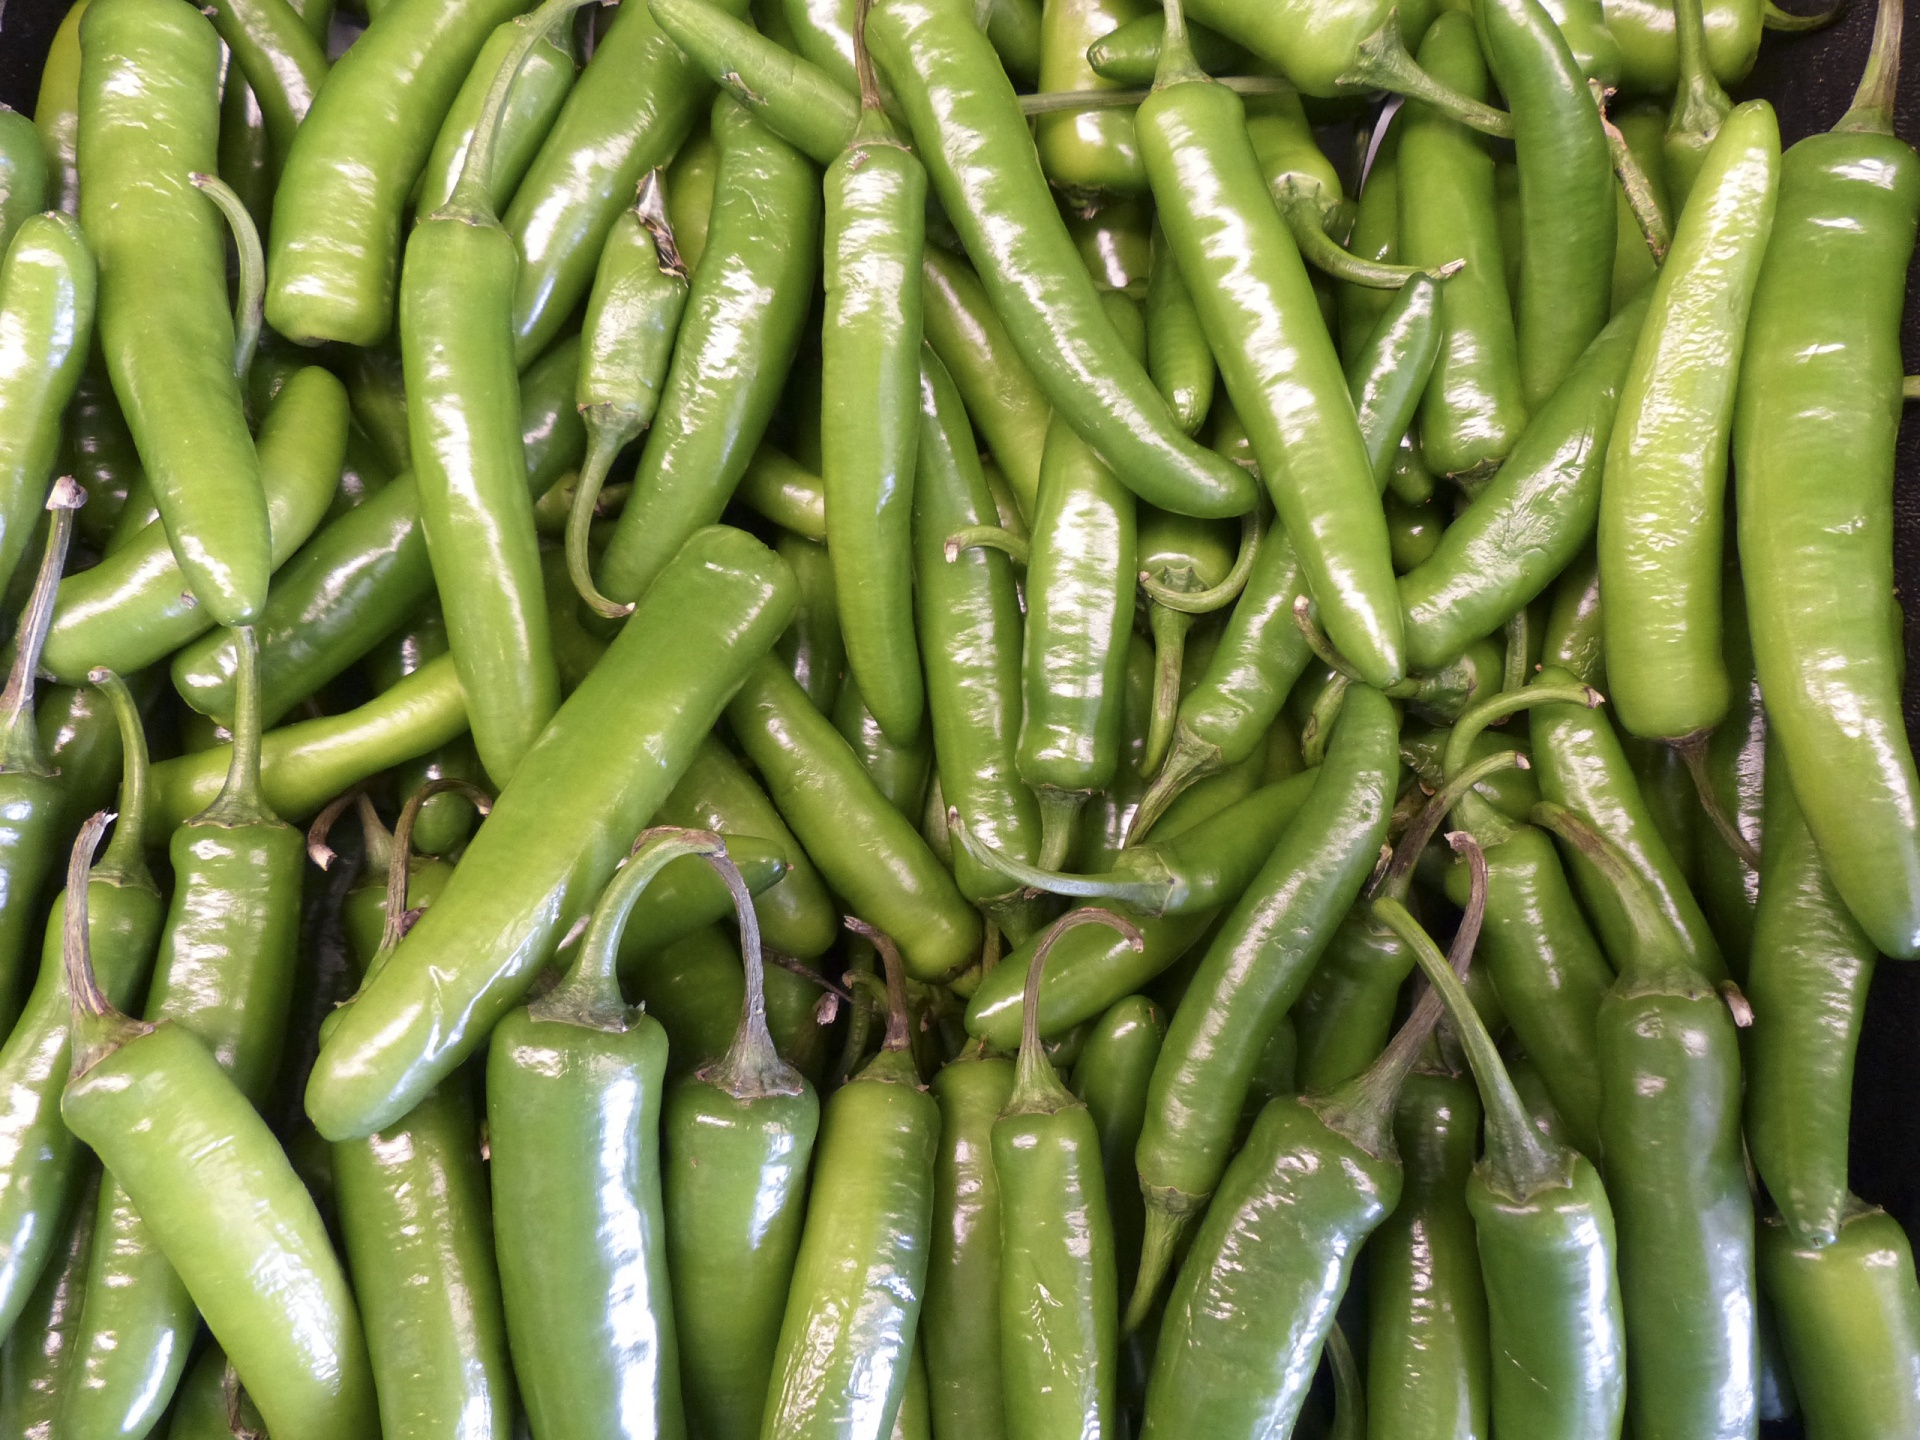 Hatch Chili Peppers